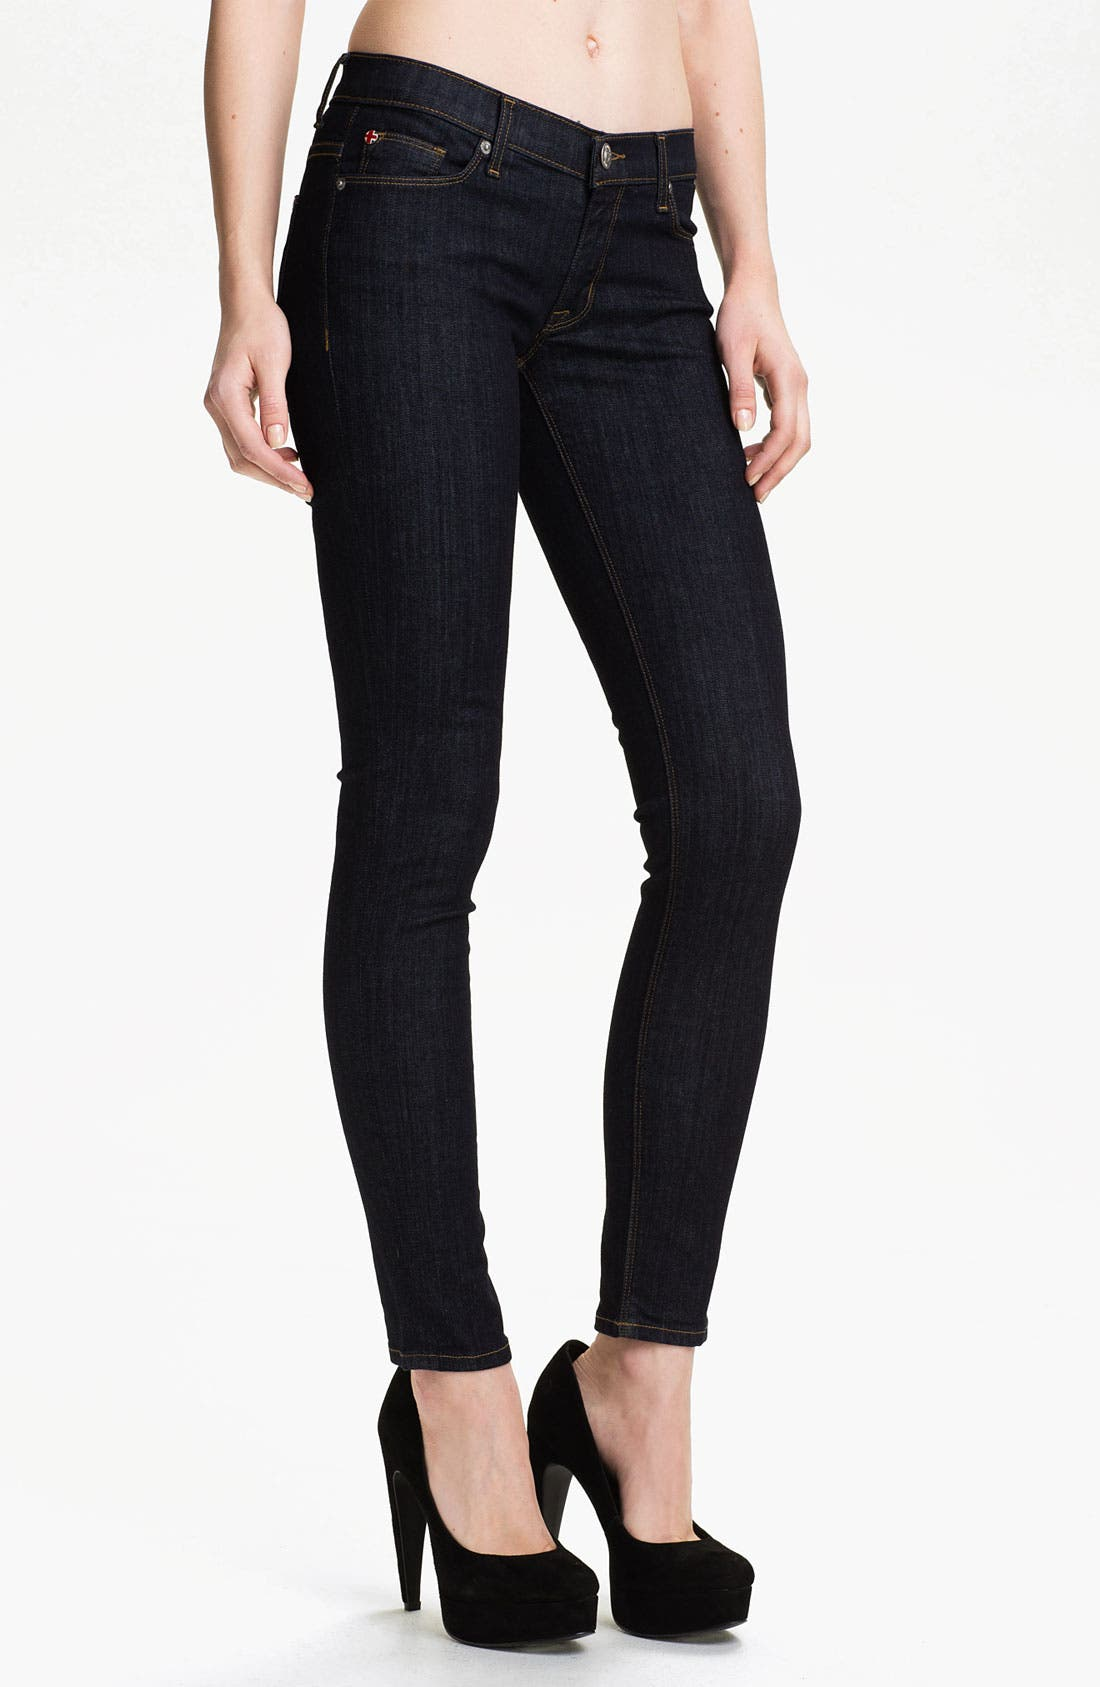 Alternate Image 1 Selected - Hudson Jeans 'Krista' Super Skinny Jeans (Foley)